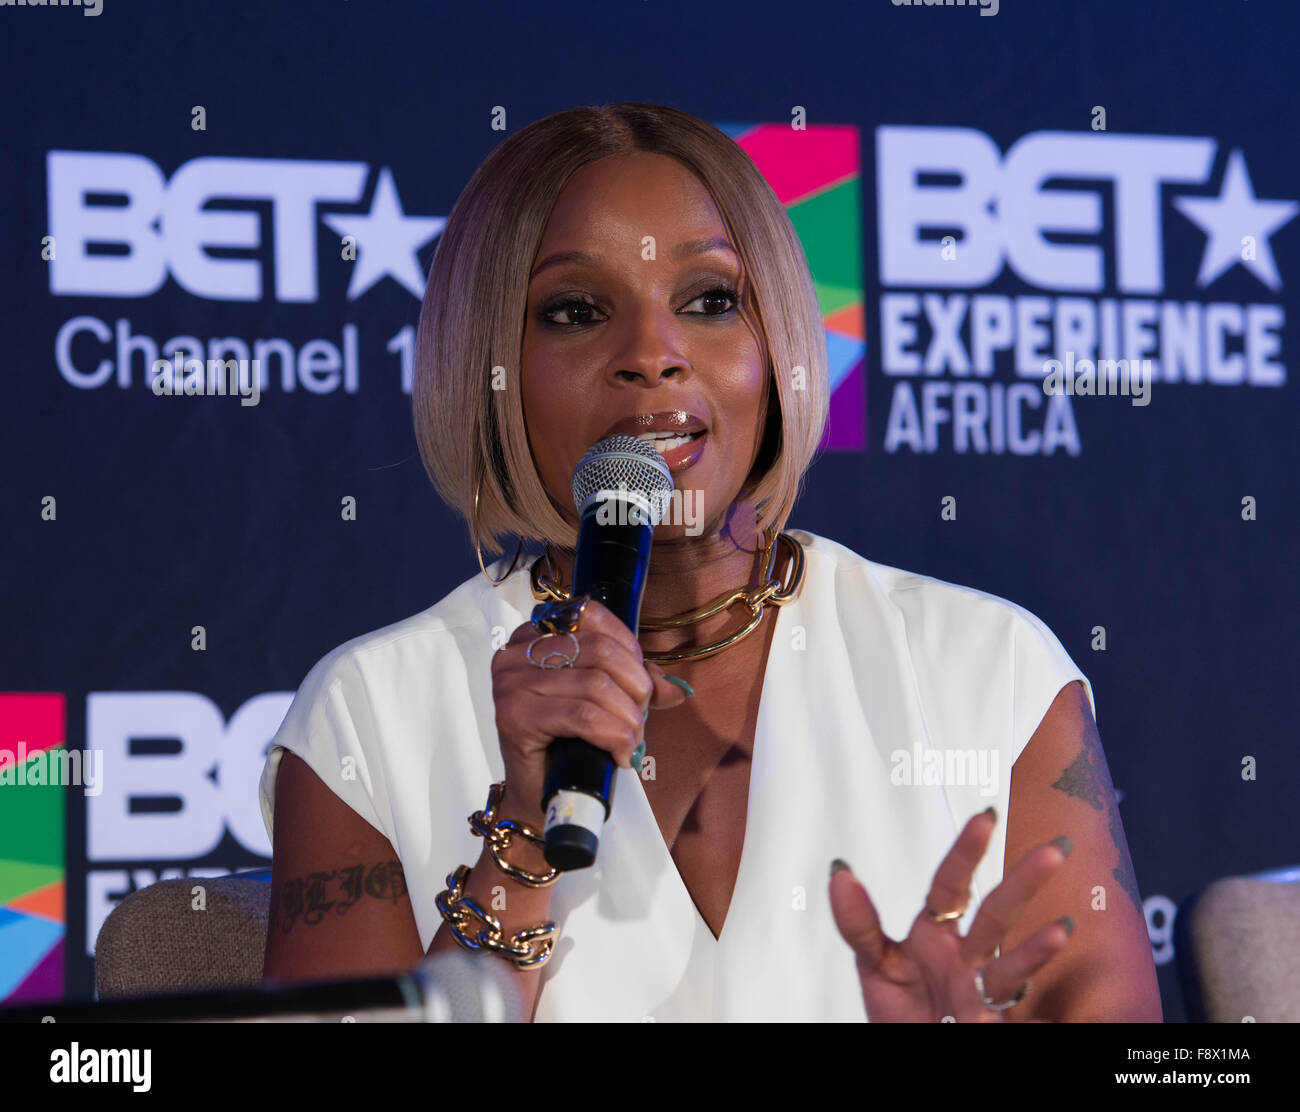 Mary J Blige at the BET Experience Africa press conference. - Stock Image